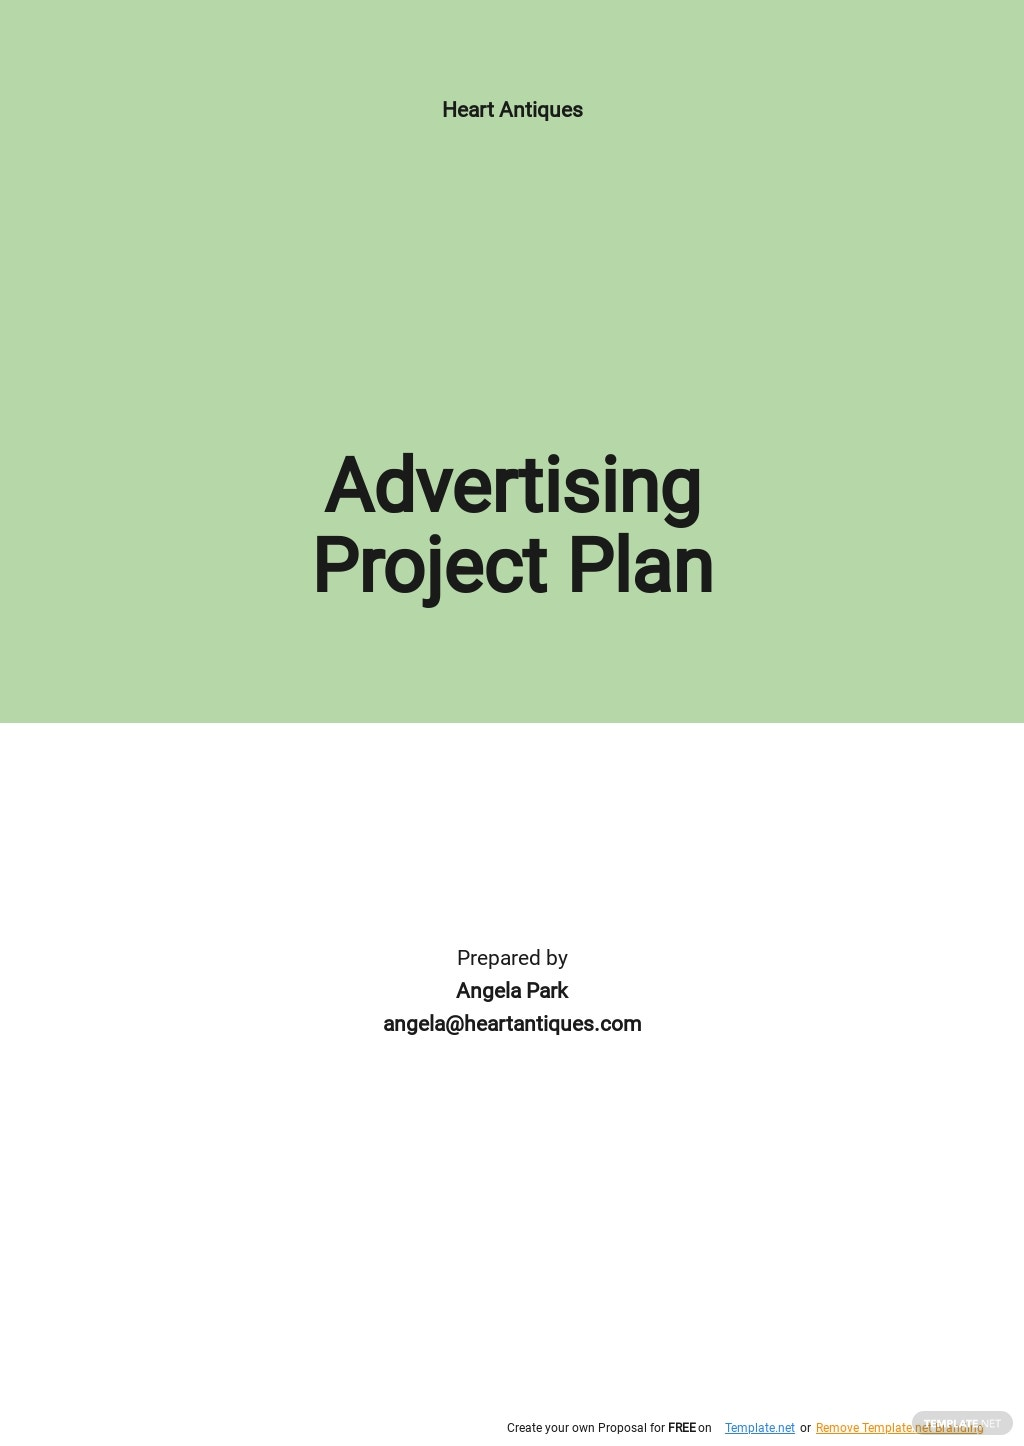 Advertising Project Plan Template.jpe